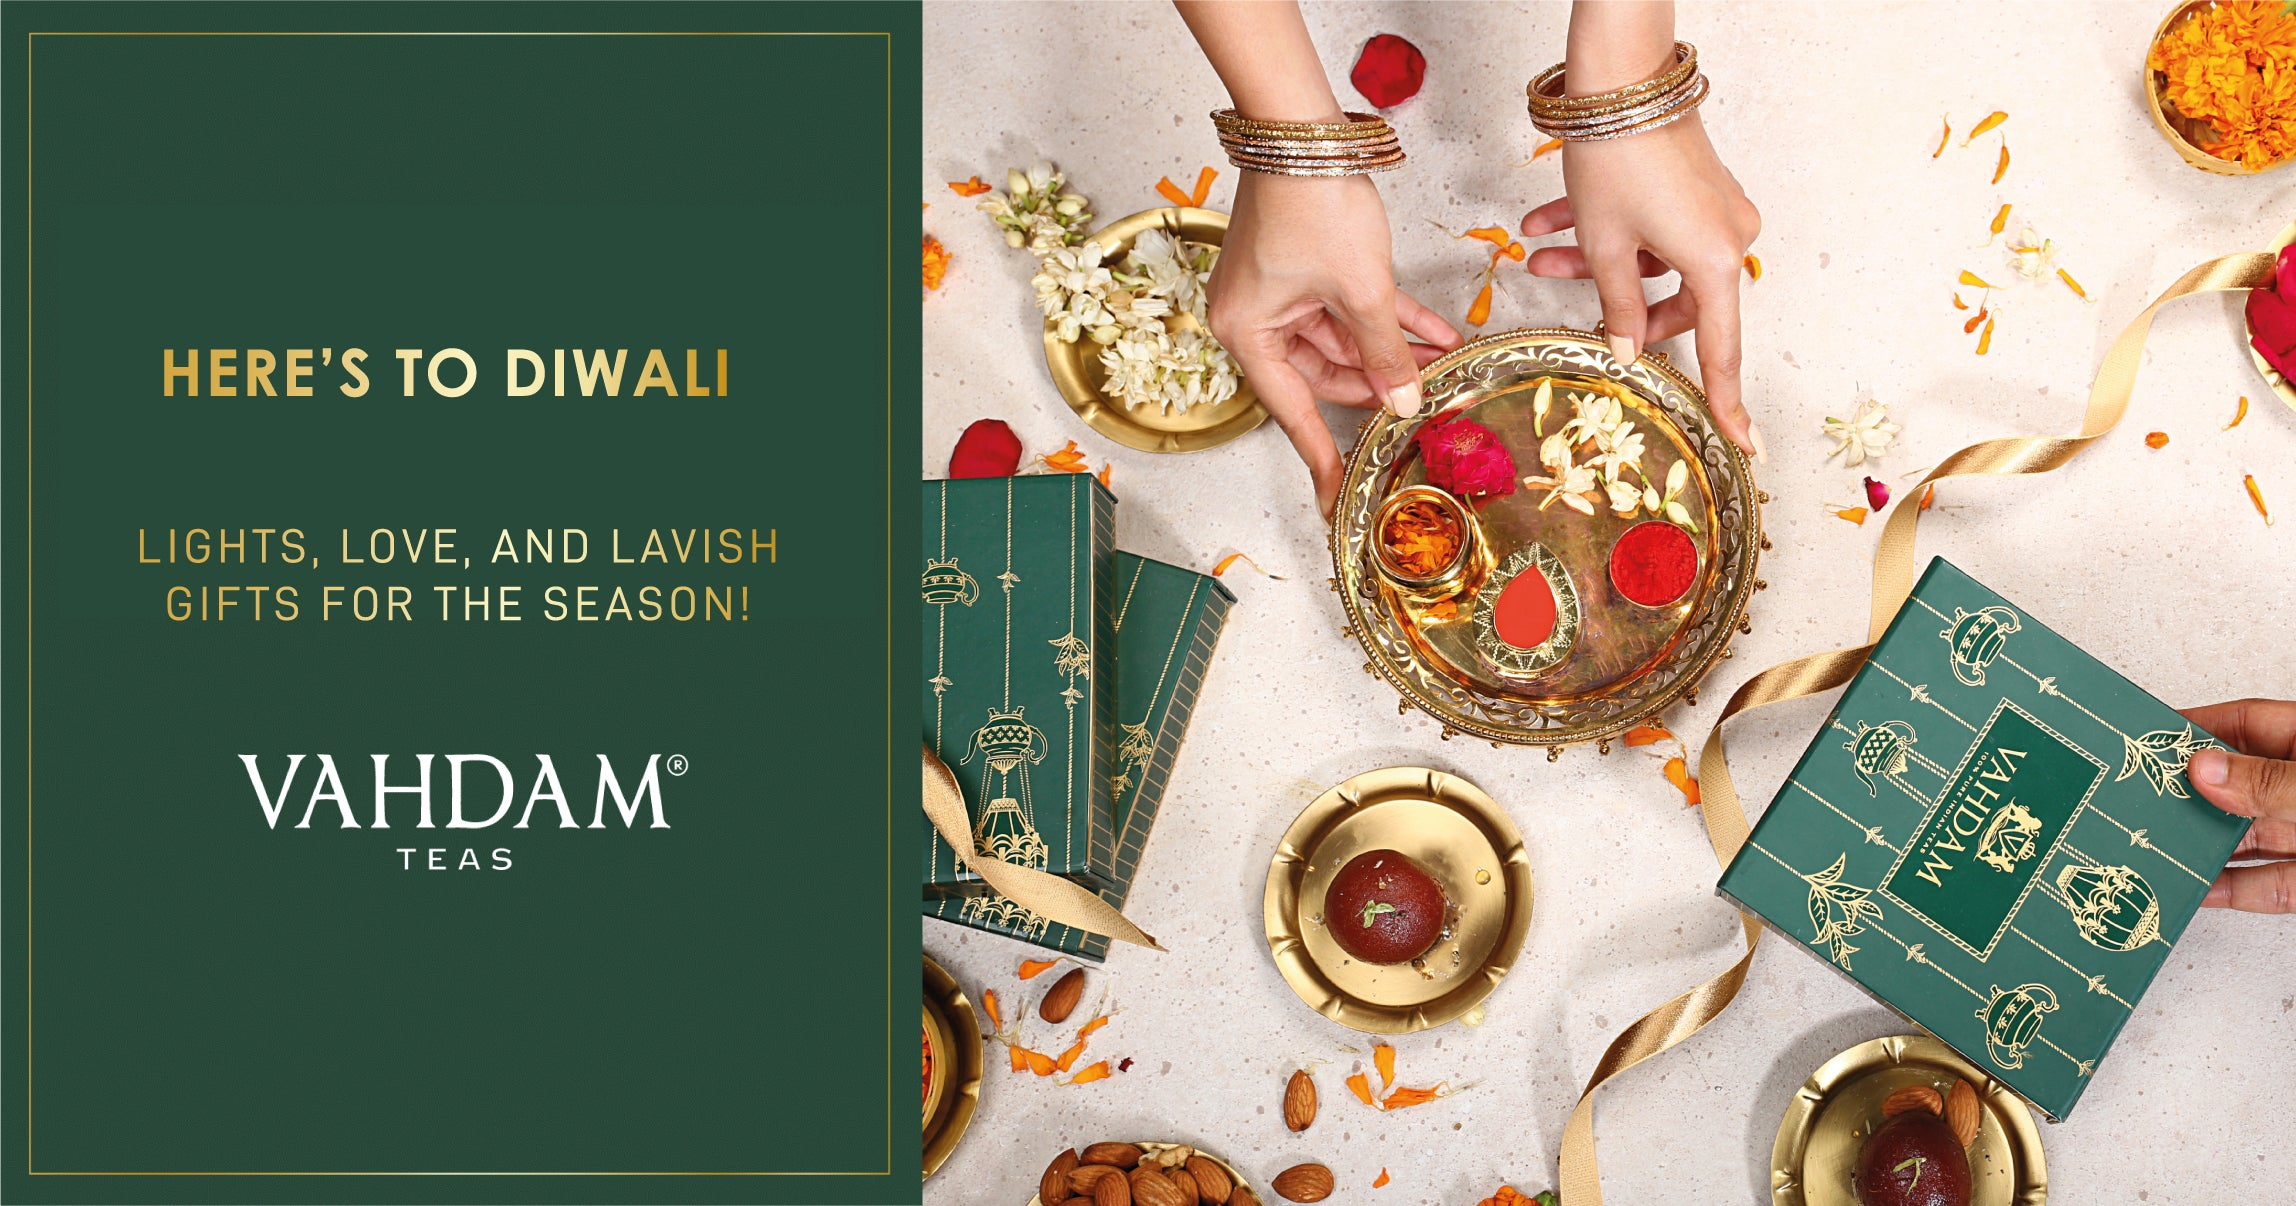 Diwali, A Joyous Celebration with Light, Love, and Gifts!